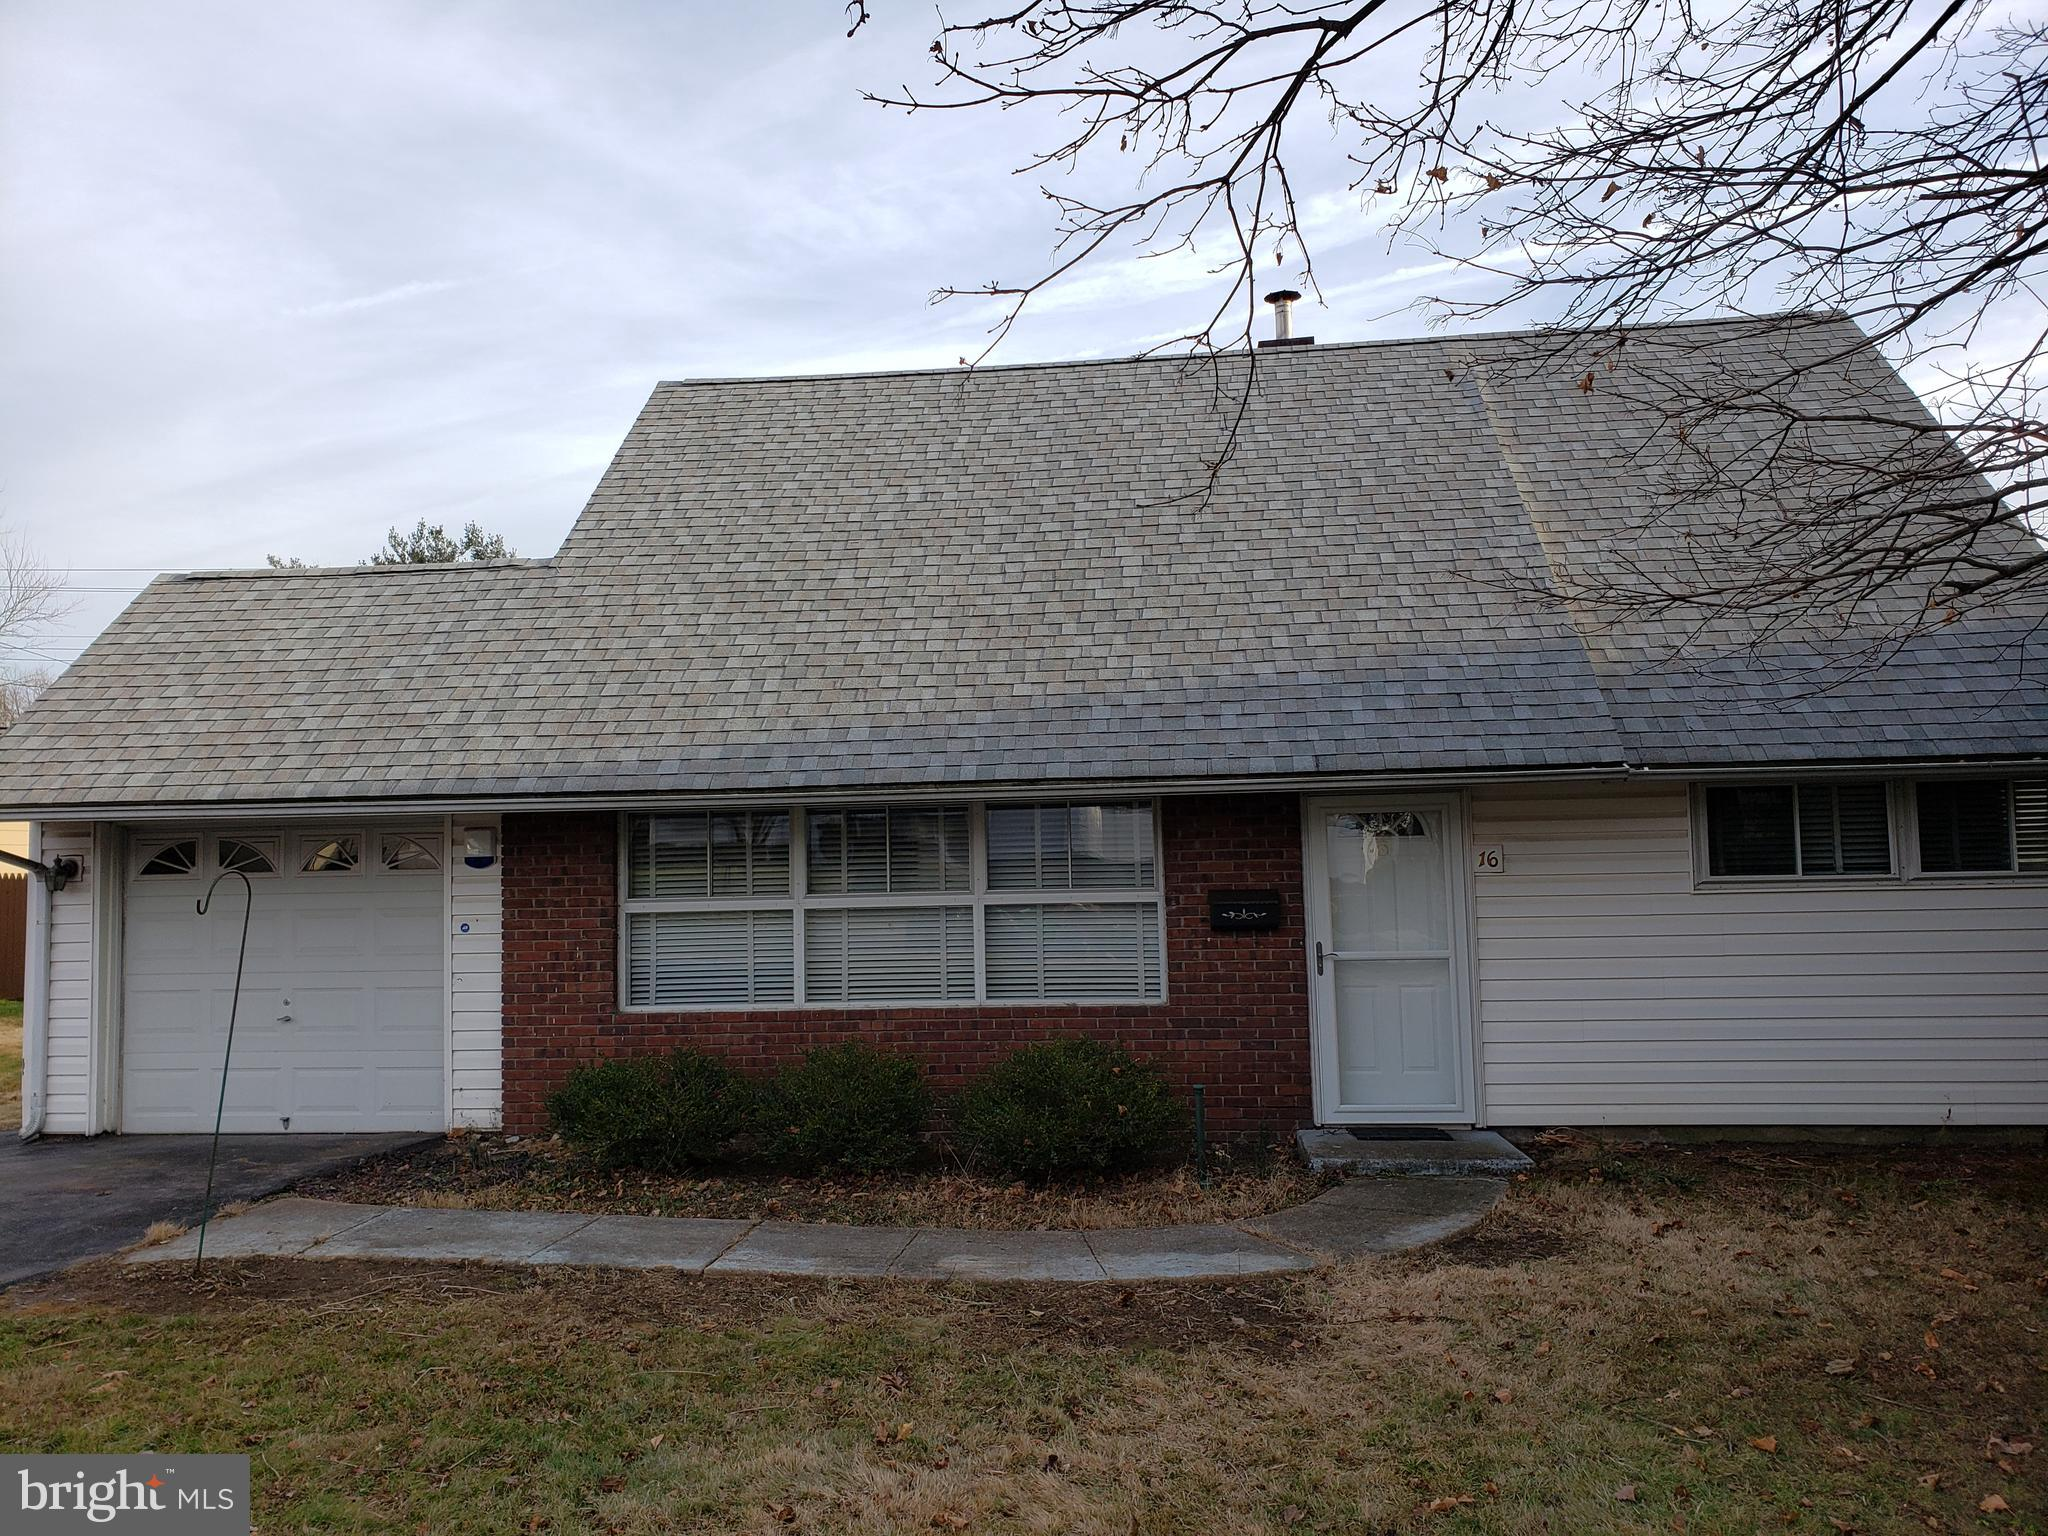 16 QUEEN LILY ROAD, LEVITTOWN, PA 19057